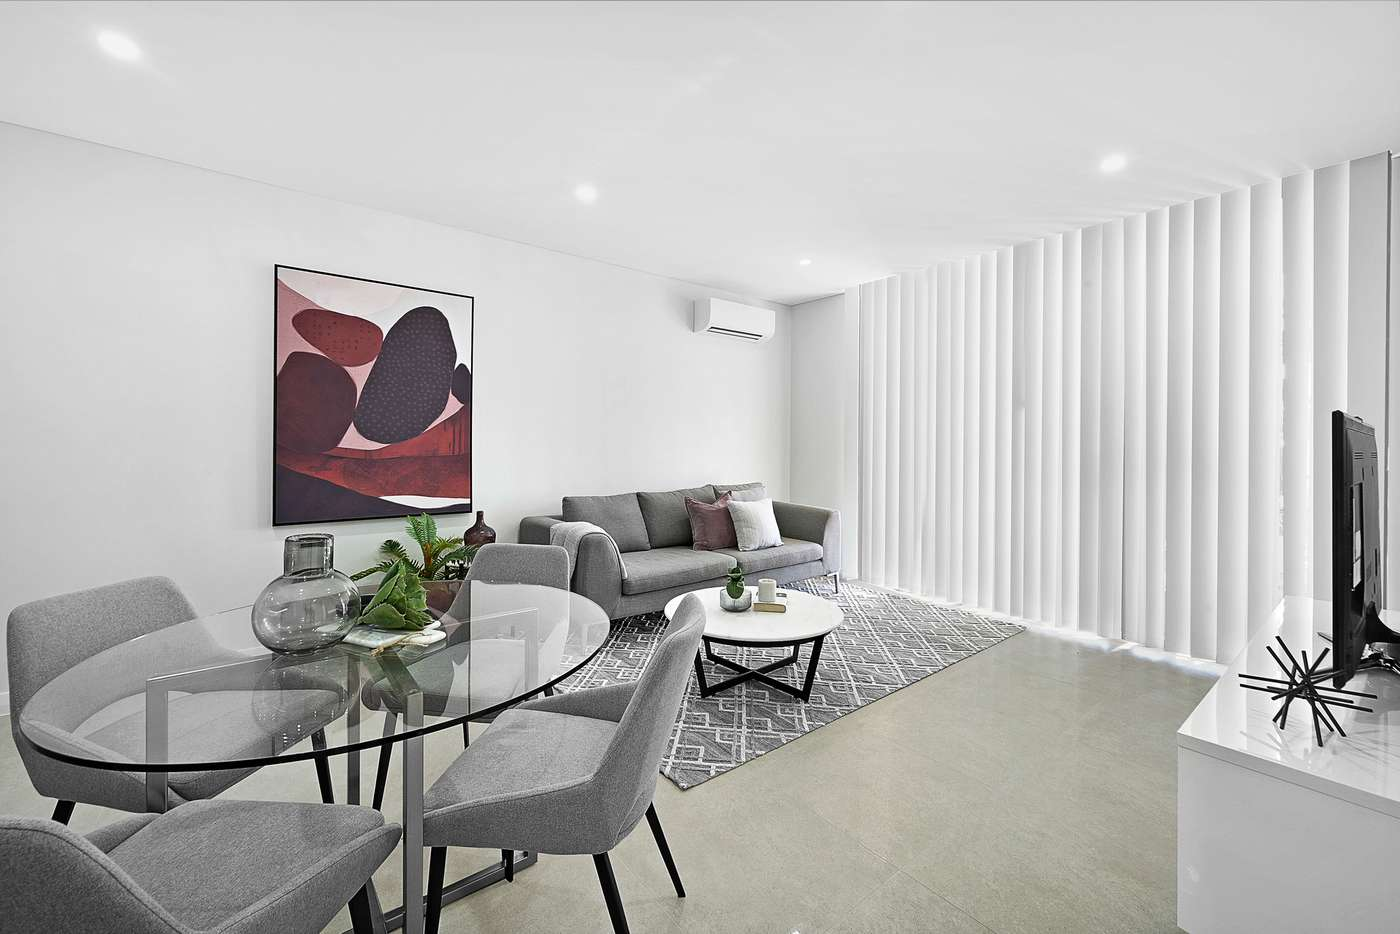 Sixth view of Homely apartment listing, 140 High Street, Penrith NSW 2750